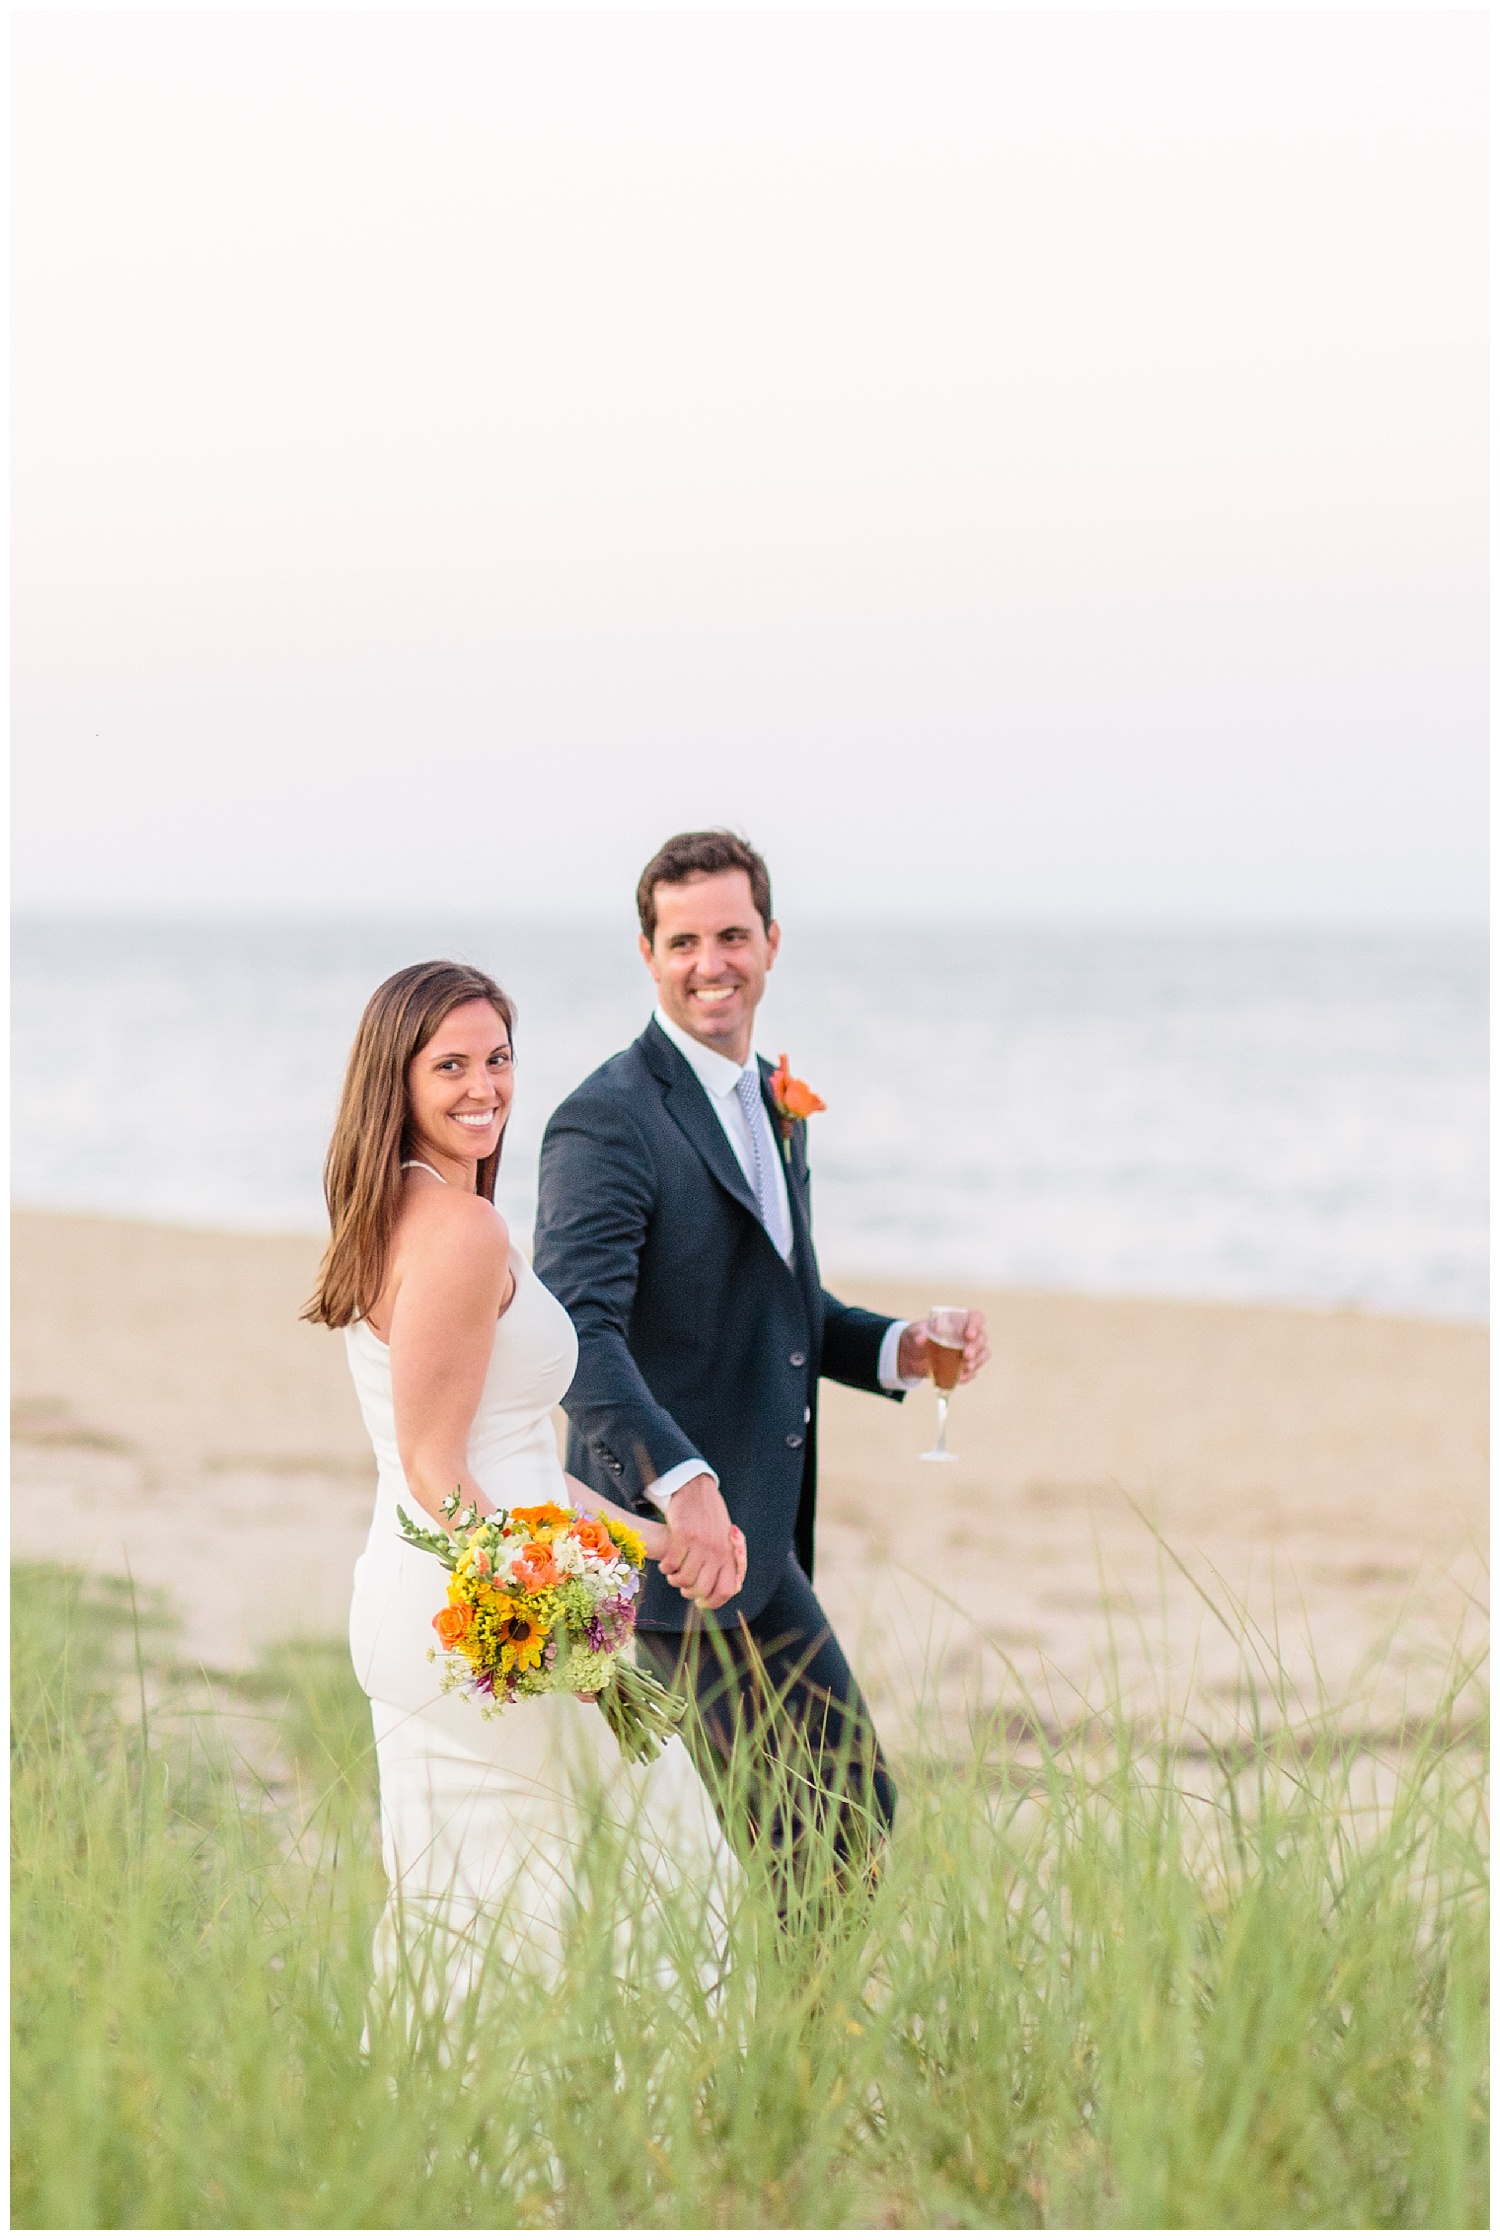 emily-belson-photography-nantucket-elopement-48.jpg